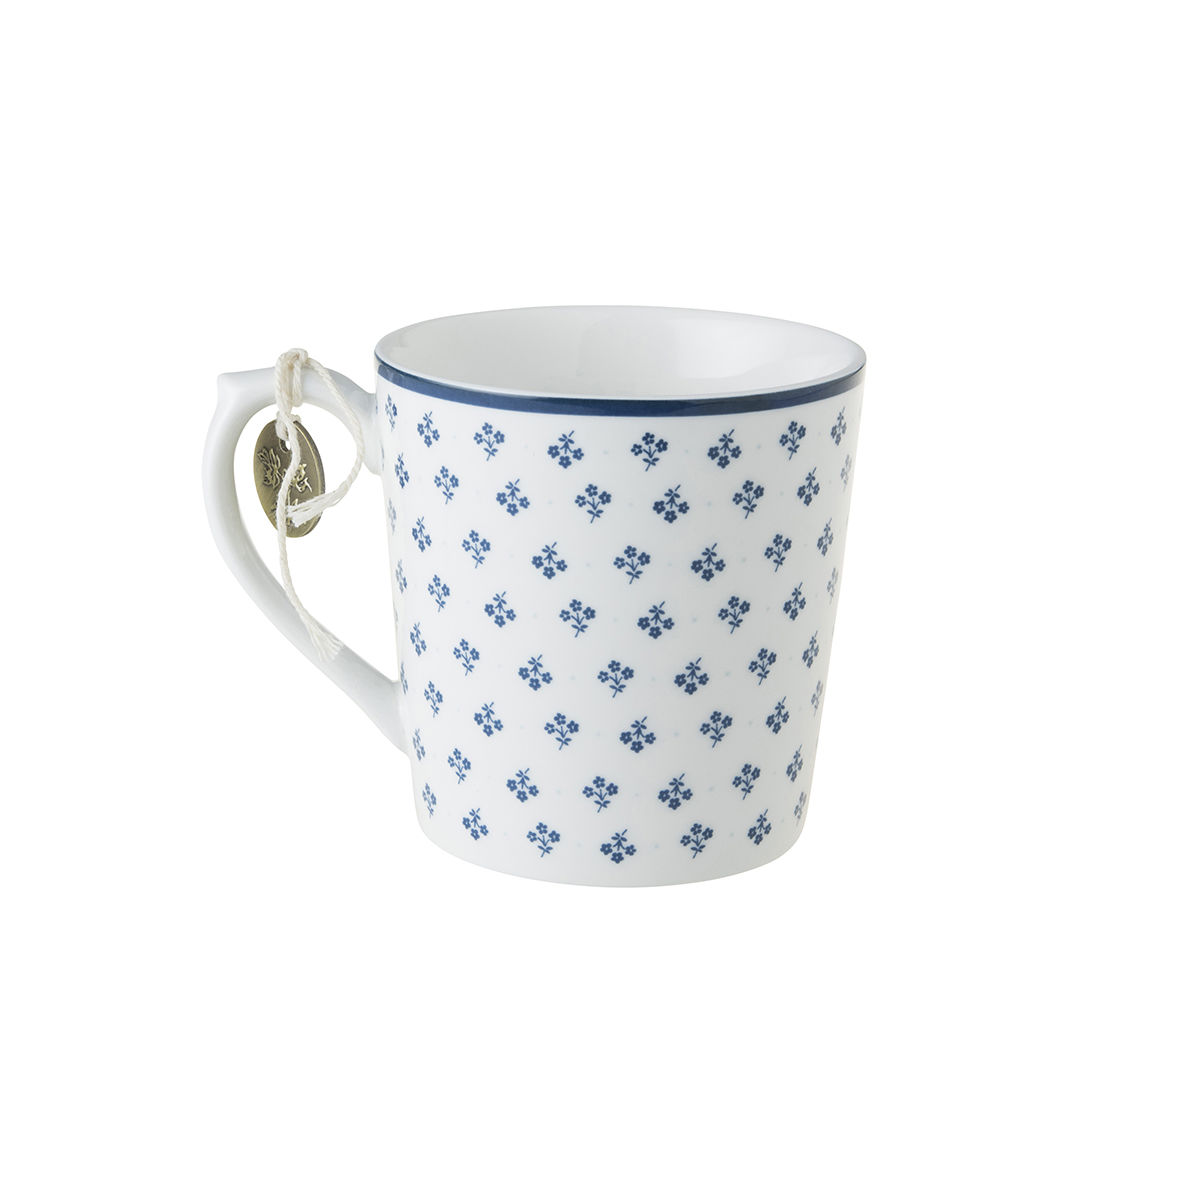 Laura Ashley Mug 10 oz Petit Fleur - product images  of